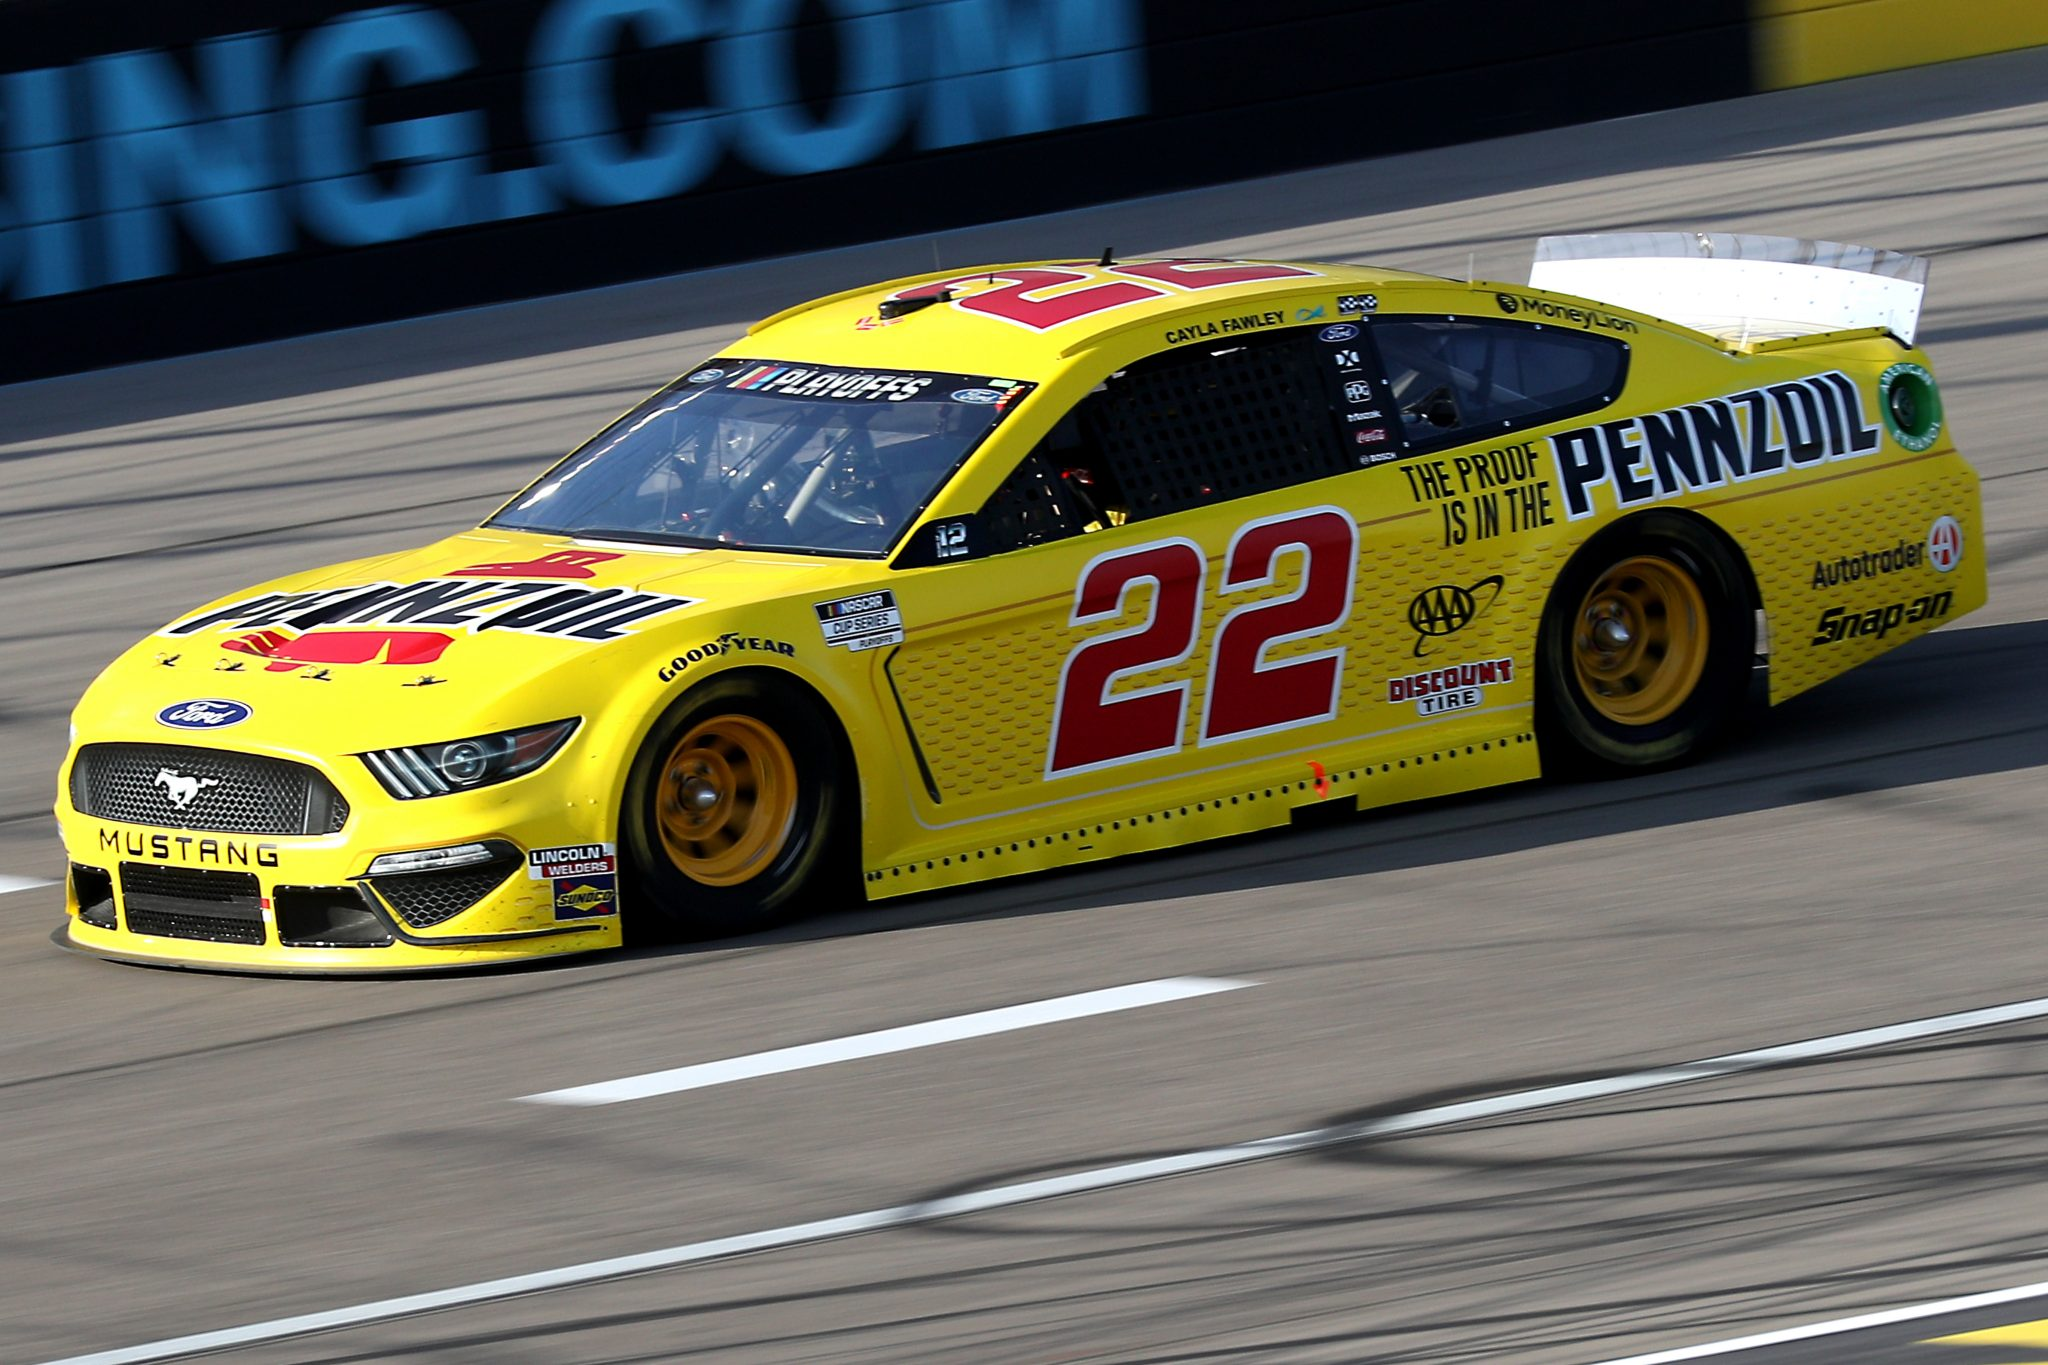 LAS VEGAS, NEVADA - SEPTEMBER 27: Joey Logano, driver of the #22 Pennzoil Ford, drives during the NASCAR Cup Series South Point 400 at Las Vegas Motor Speedway on September 27, 2020 in Las Vegas, Nevada. (Photo by Chris Graythen/Getty Images) | Getty Images